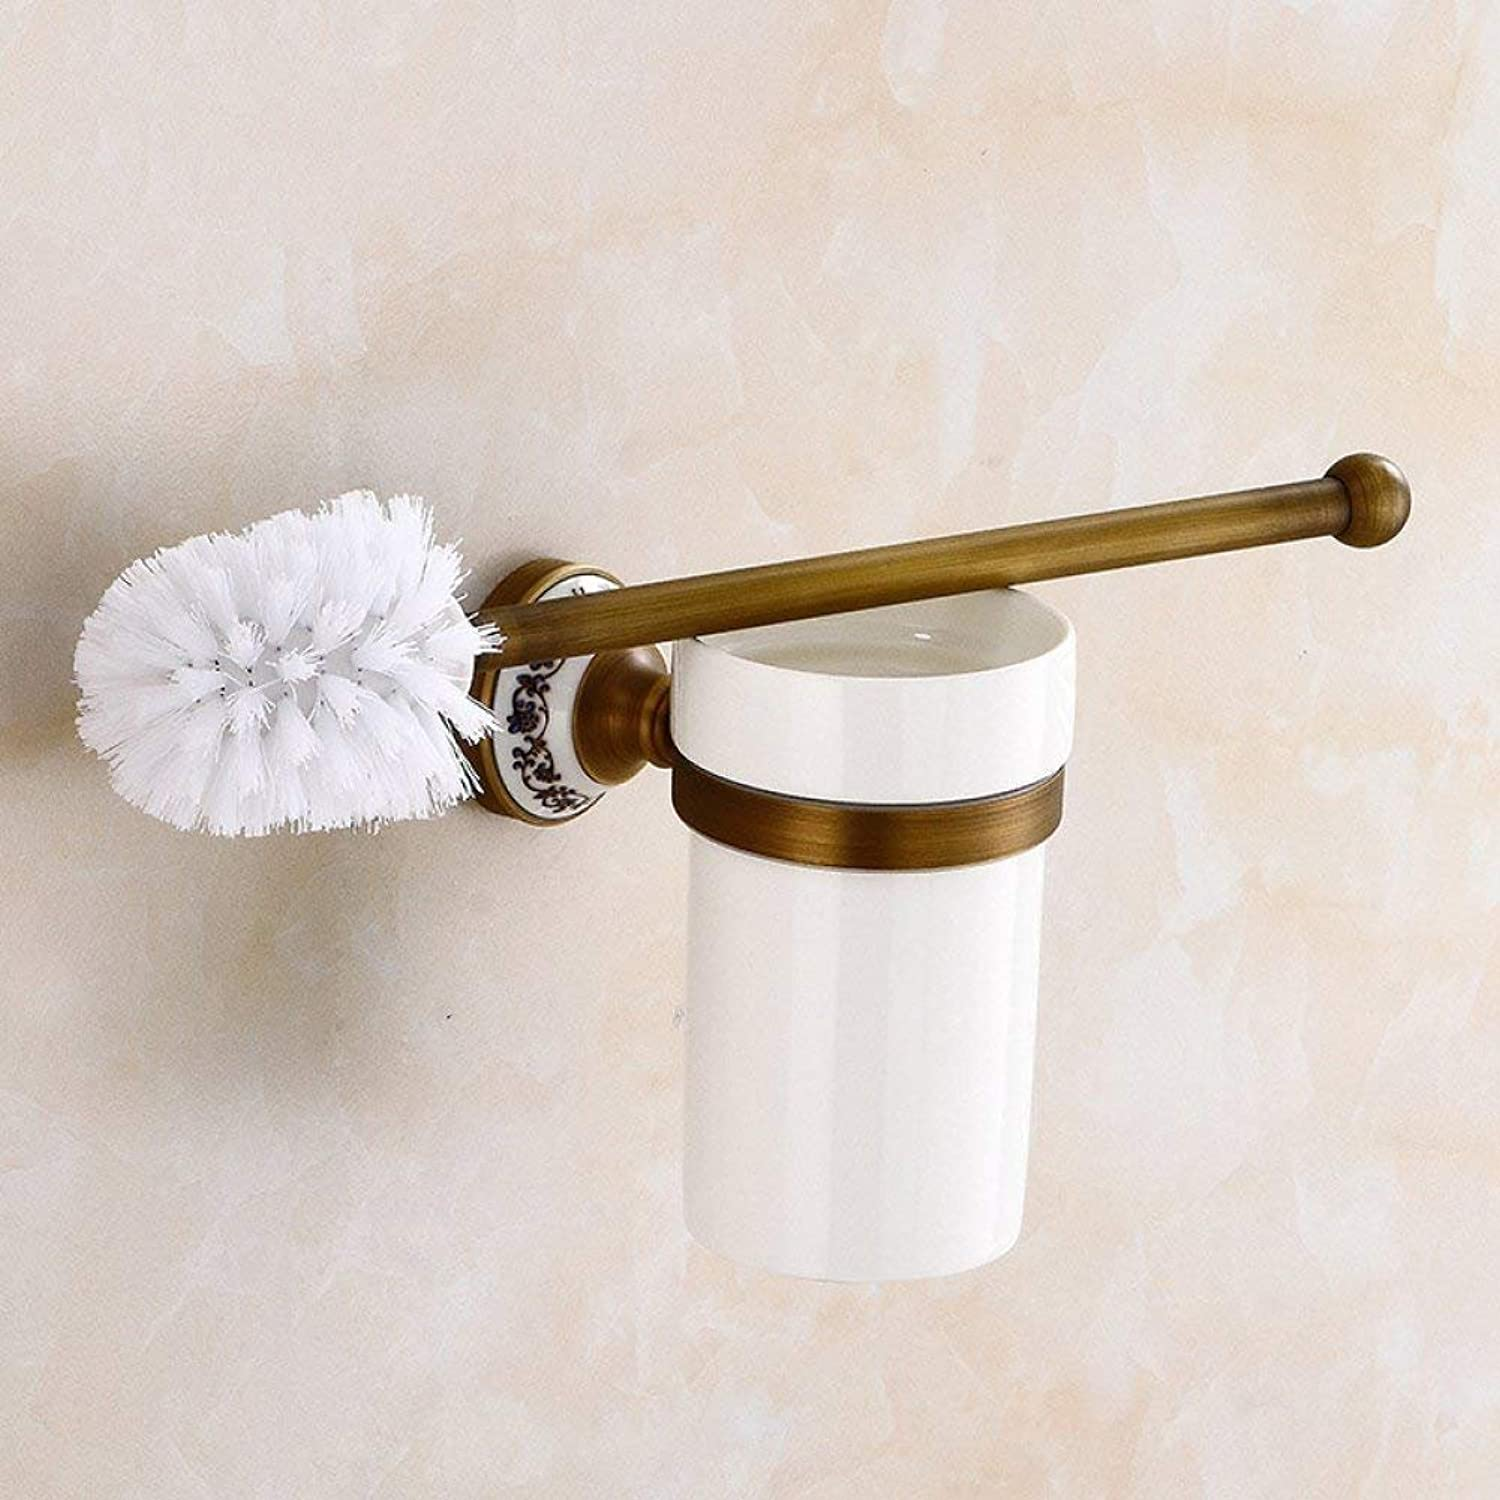 In Porcelain bluee and White and All Former Continental Brush Bronze Wall WC Brush Range WC Bathroom Accessories in Door-Equipment WC Brush